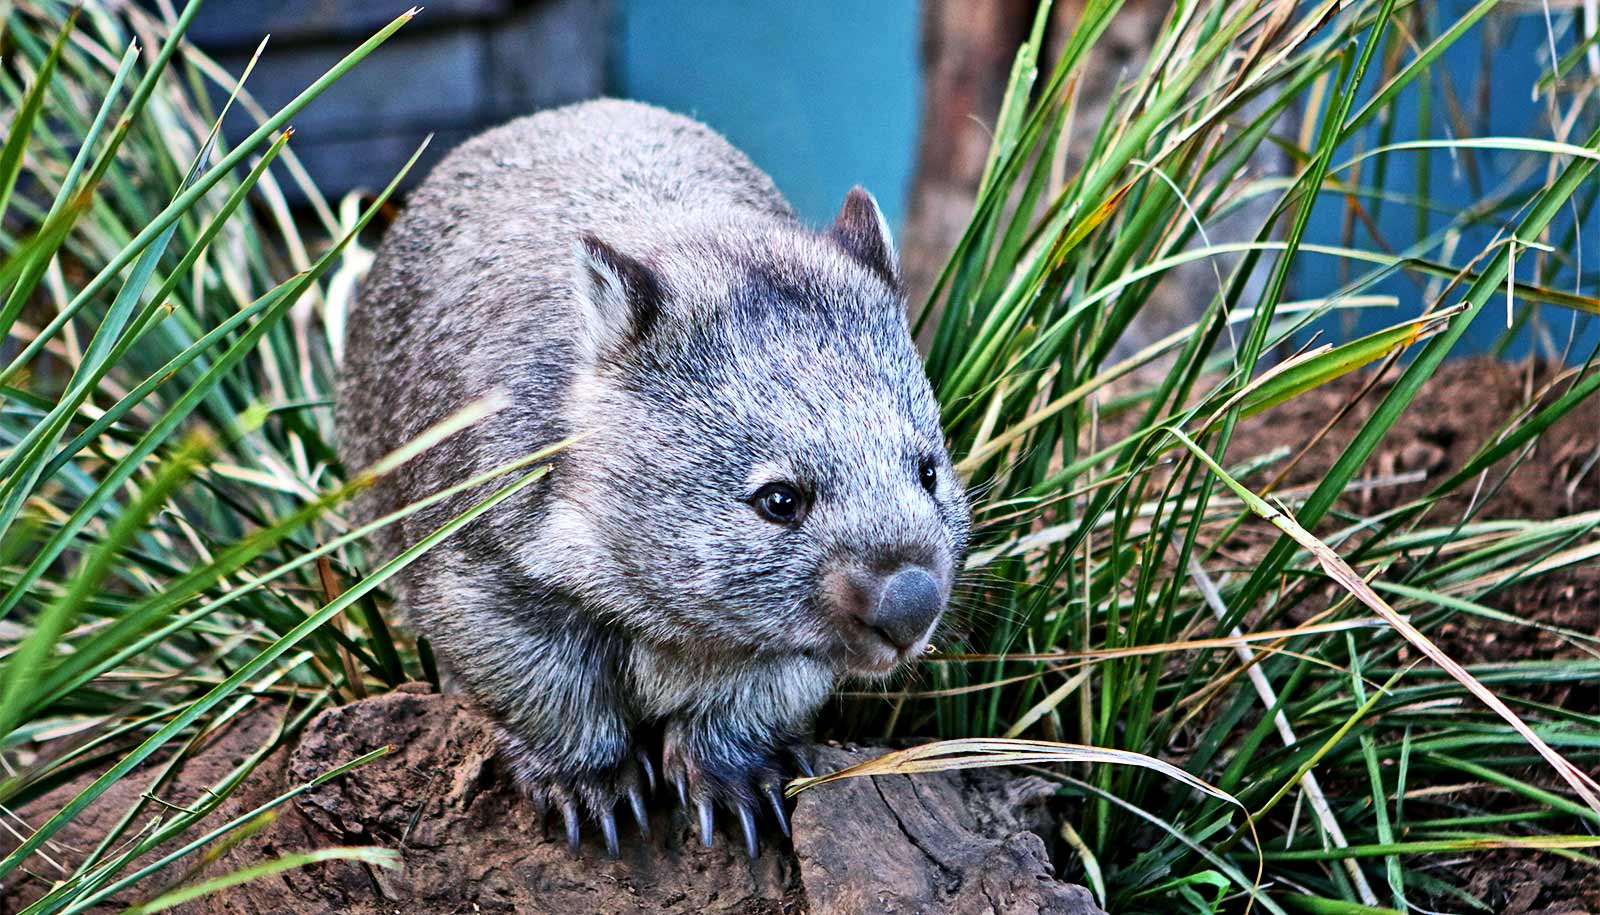 Wombat skulls are changing in response to food